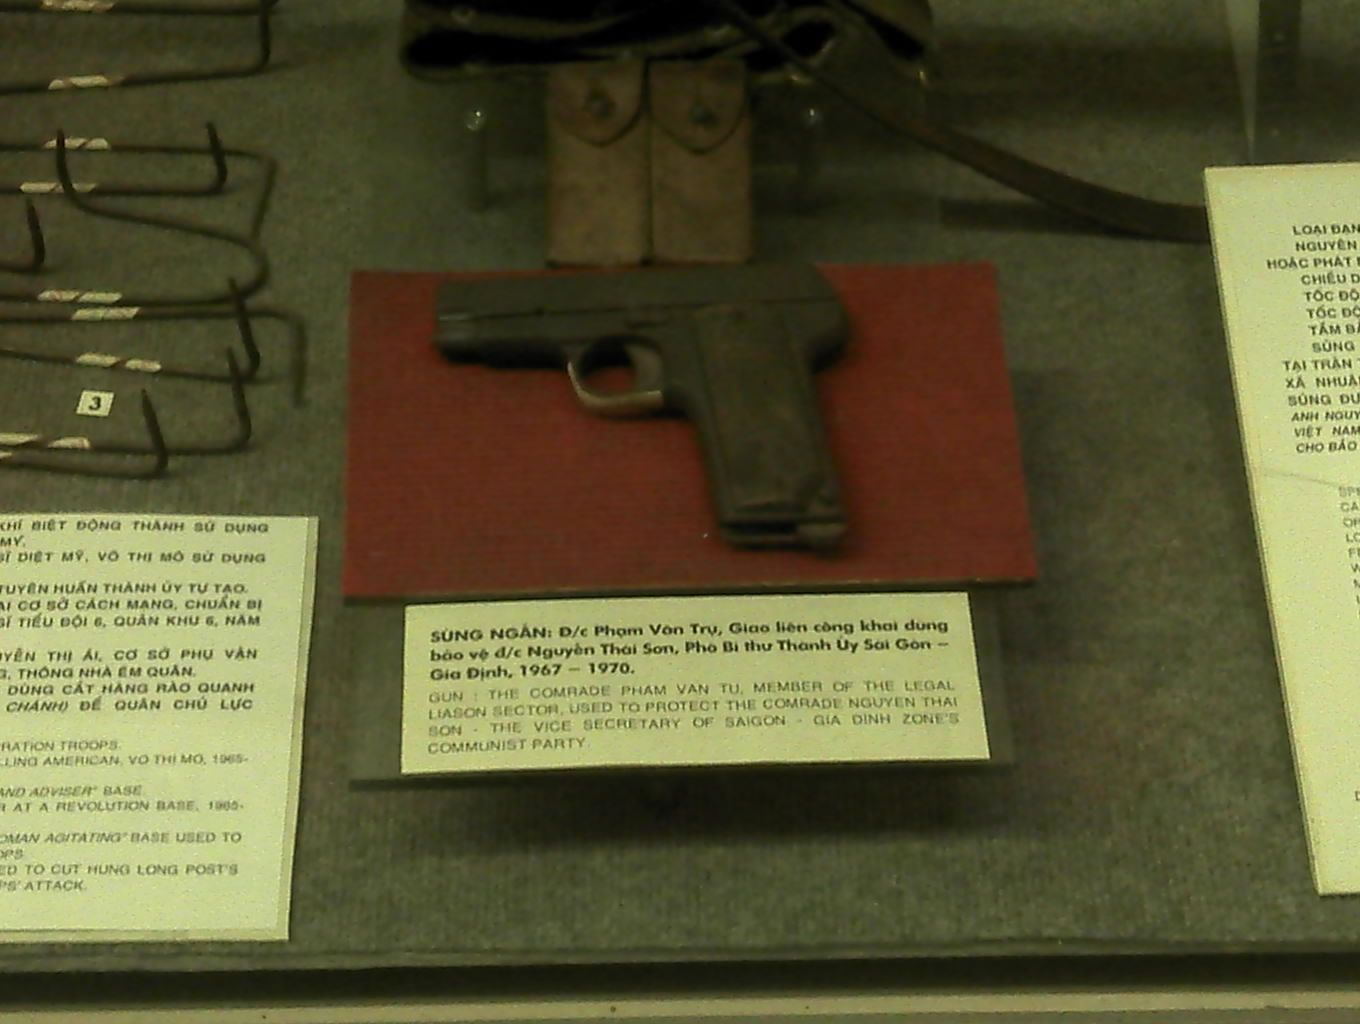 """The gun used by Comrade Pham Van Tu to protect Comrade Nguyen Thai Son"". Hm."